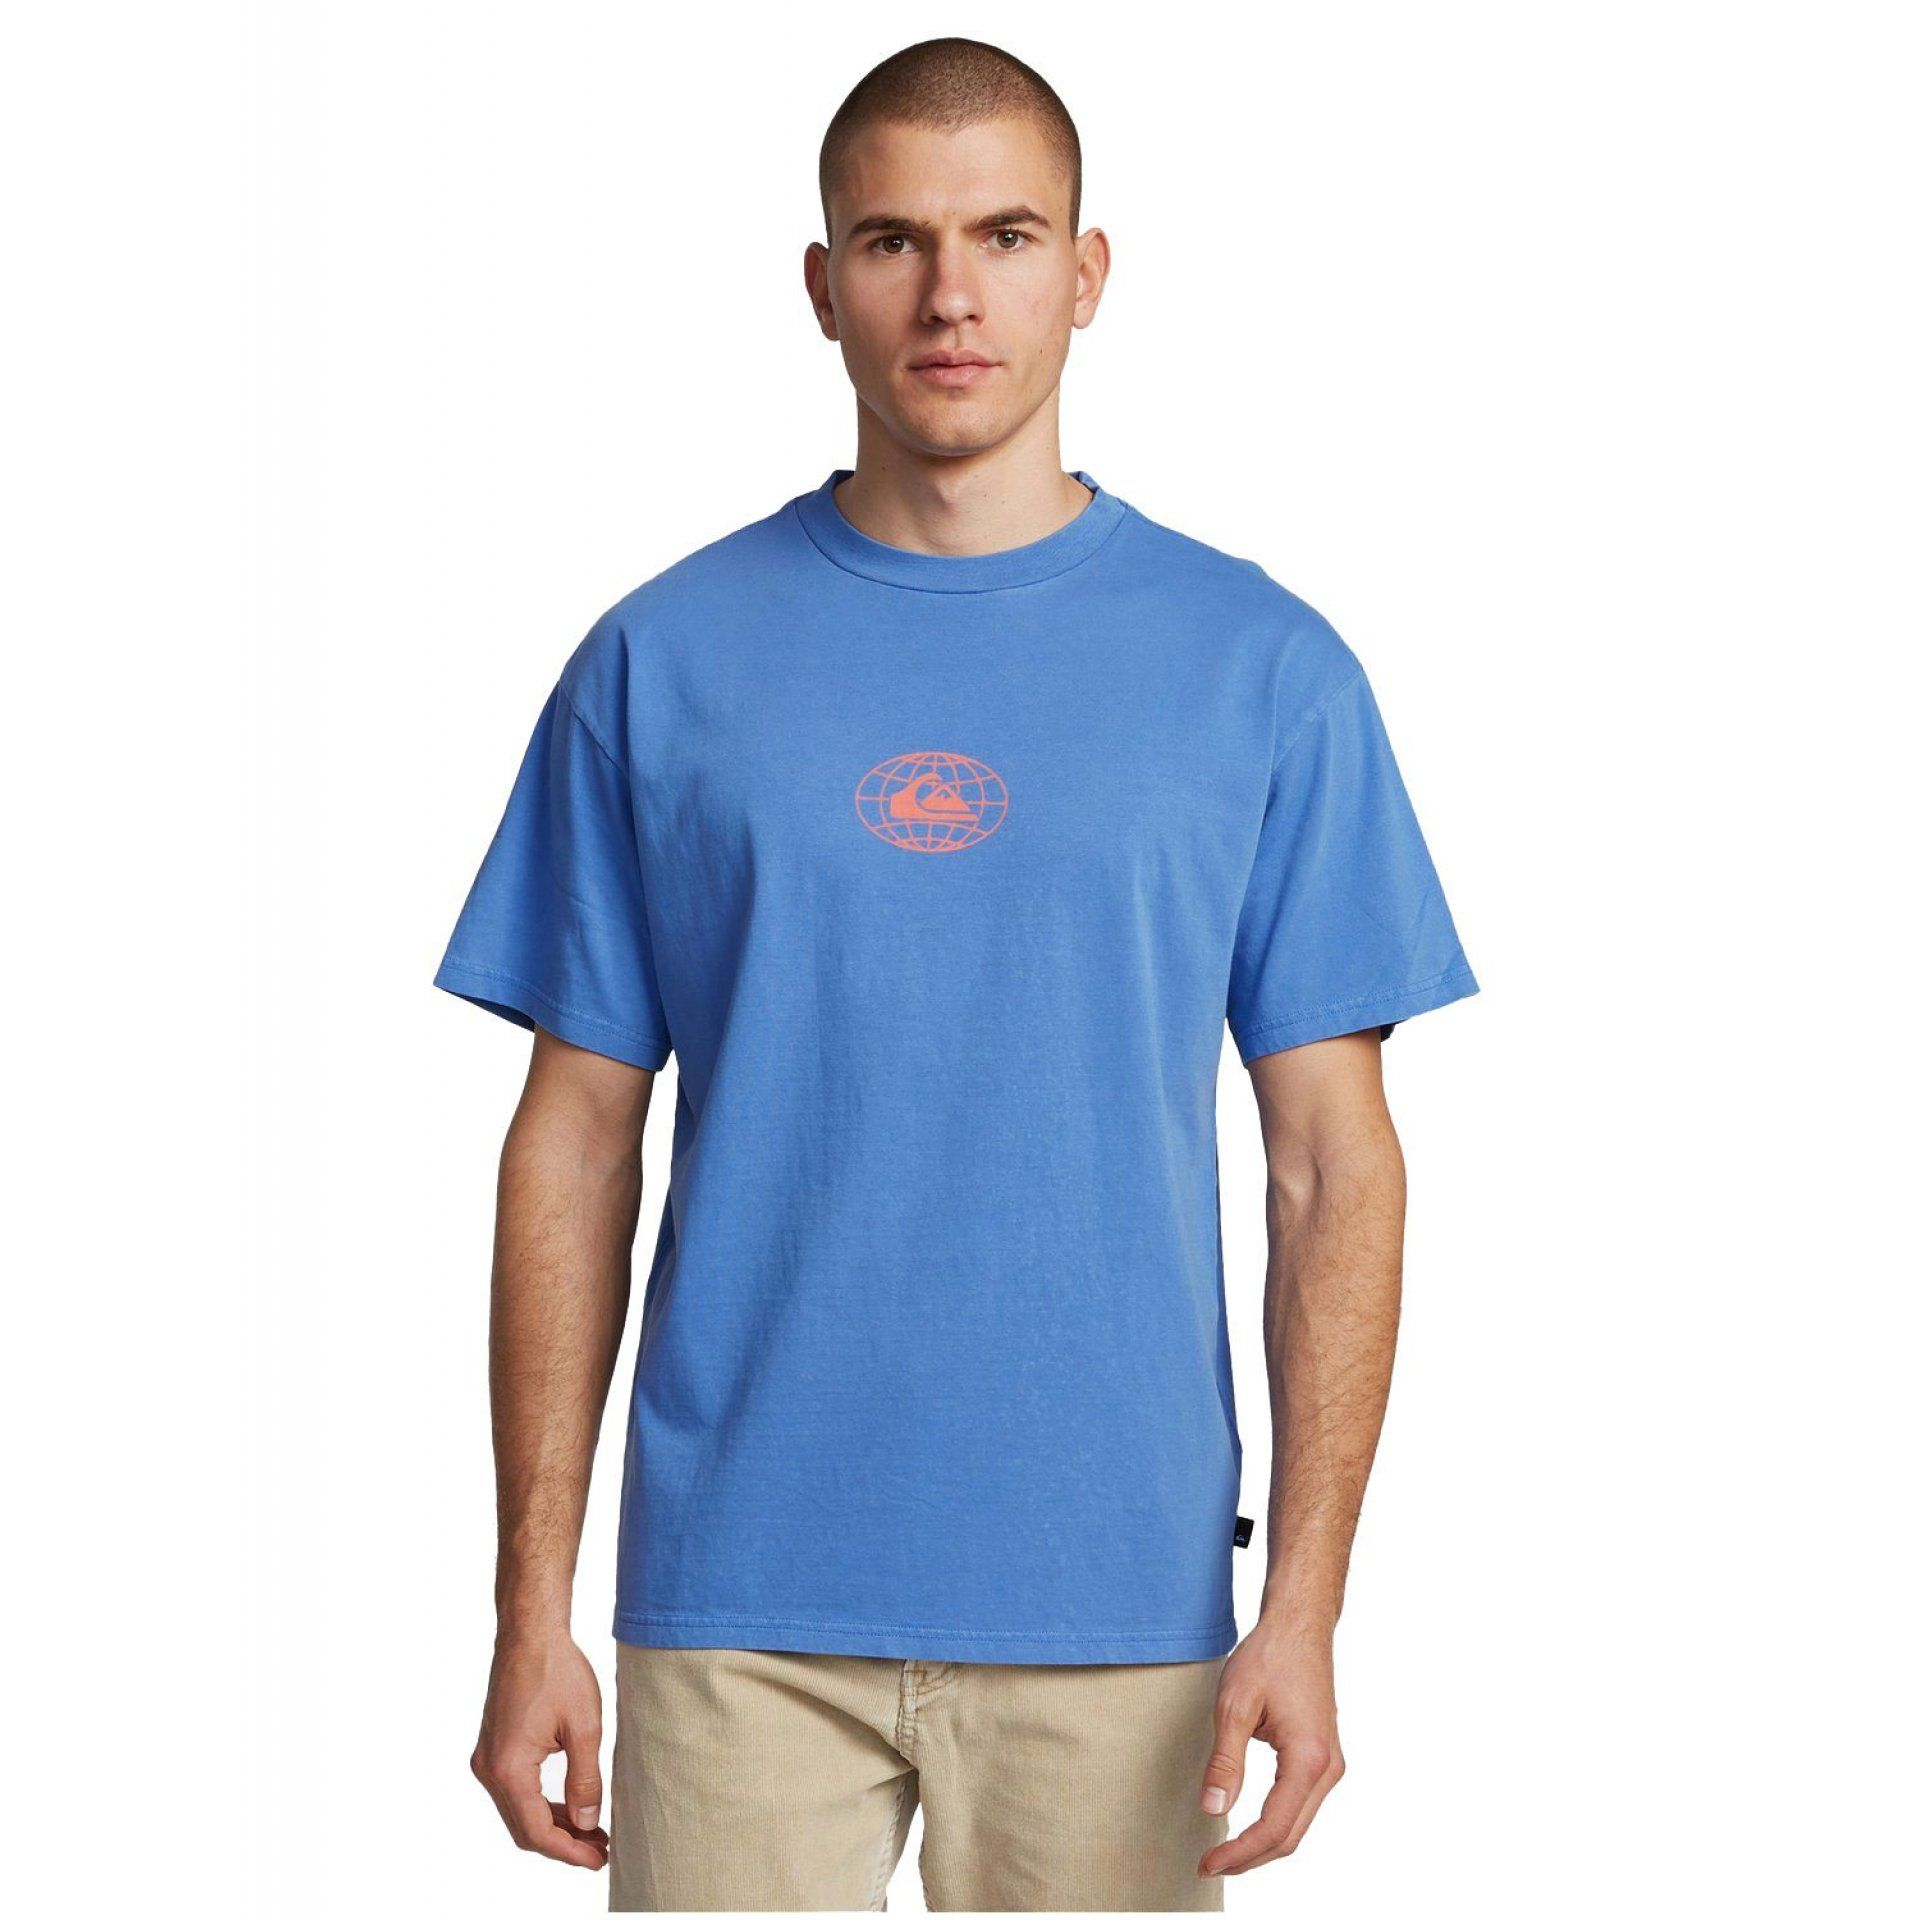 T-SHIRT QUIKSILVER GLOBAL GROOVE EQYZT05810 PPM0